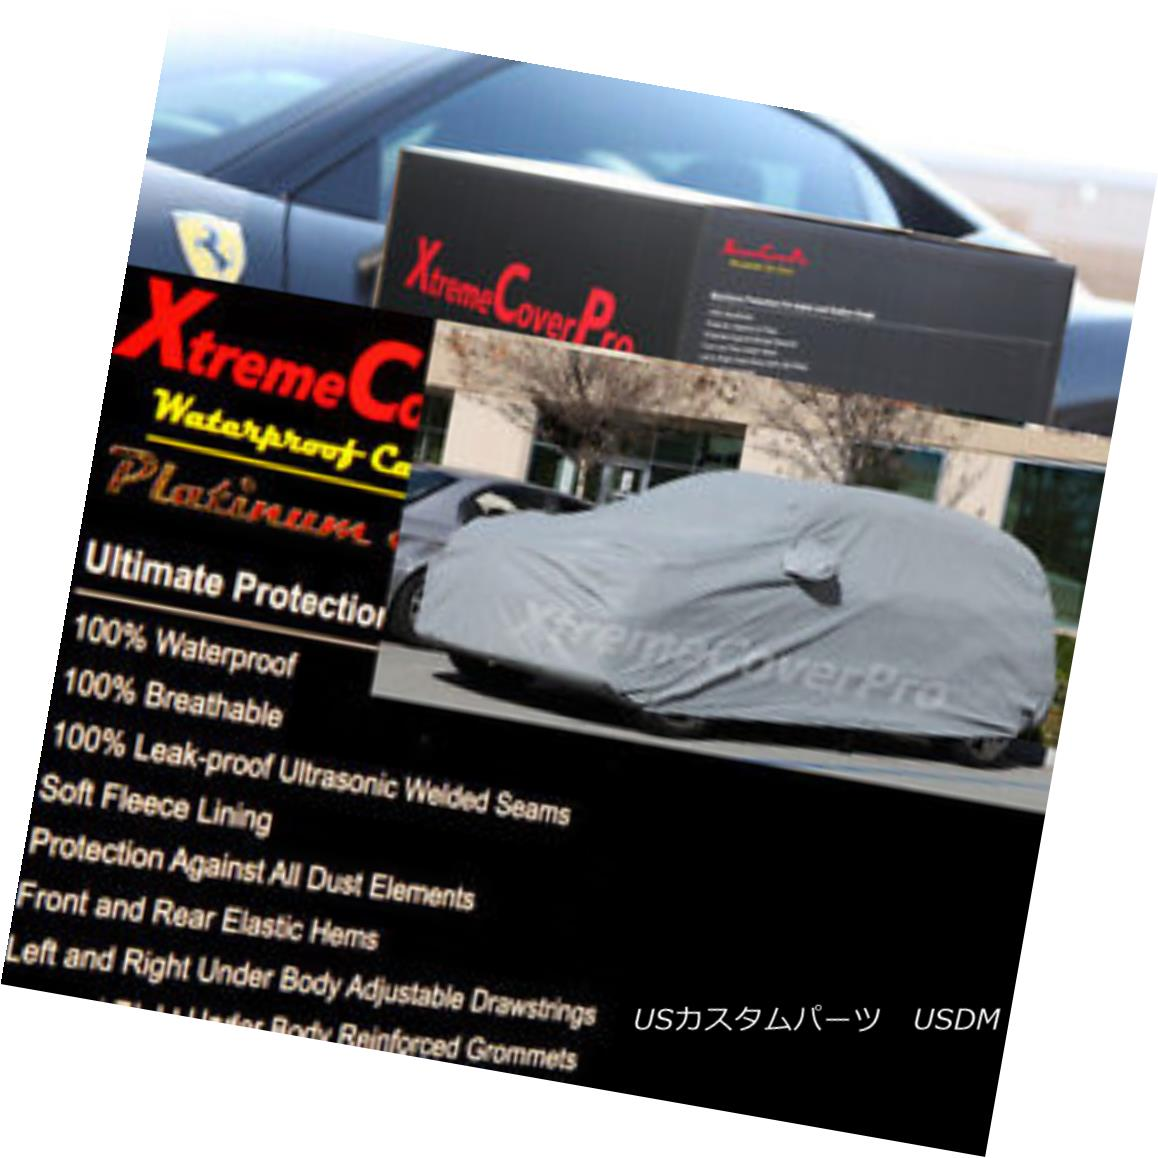 カーカバー 2003 2004 2005 Lexus GX470 Waterproof Car Cover w/MirrorPocket 2003 2004 2005 Lexus GX470防水カーカバー付きMirrorPocket